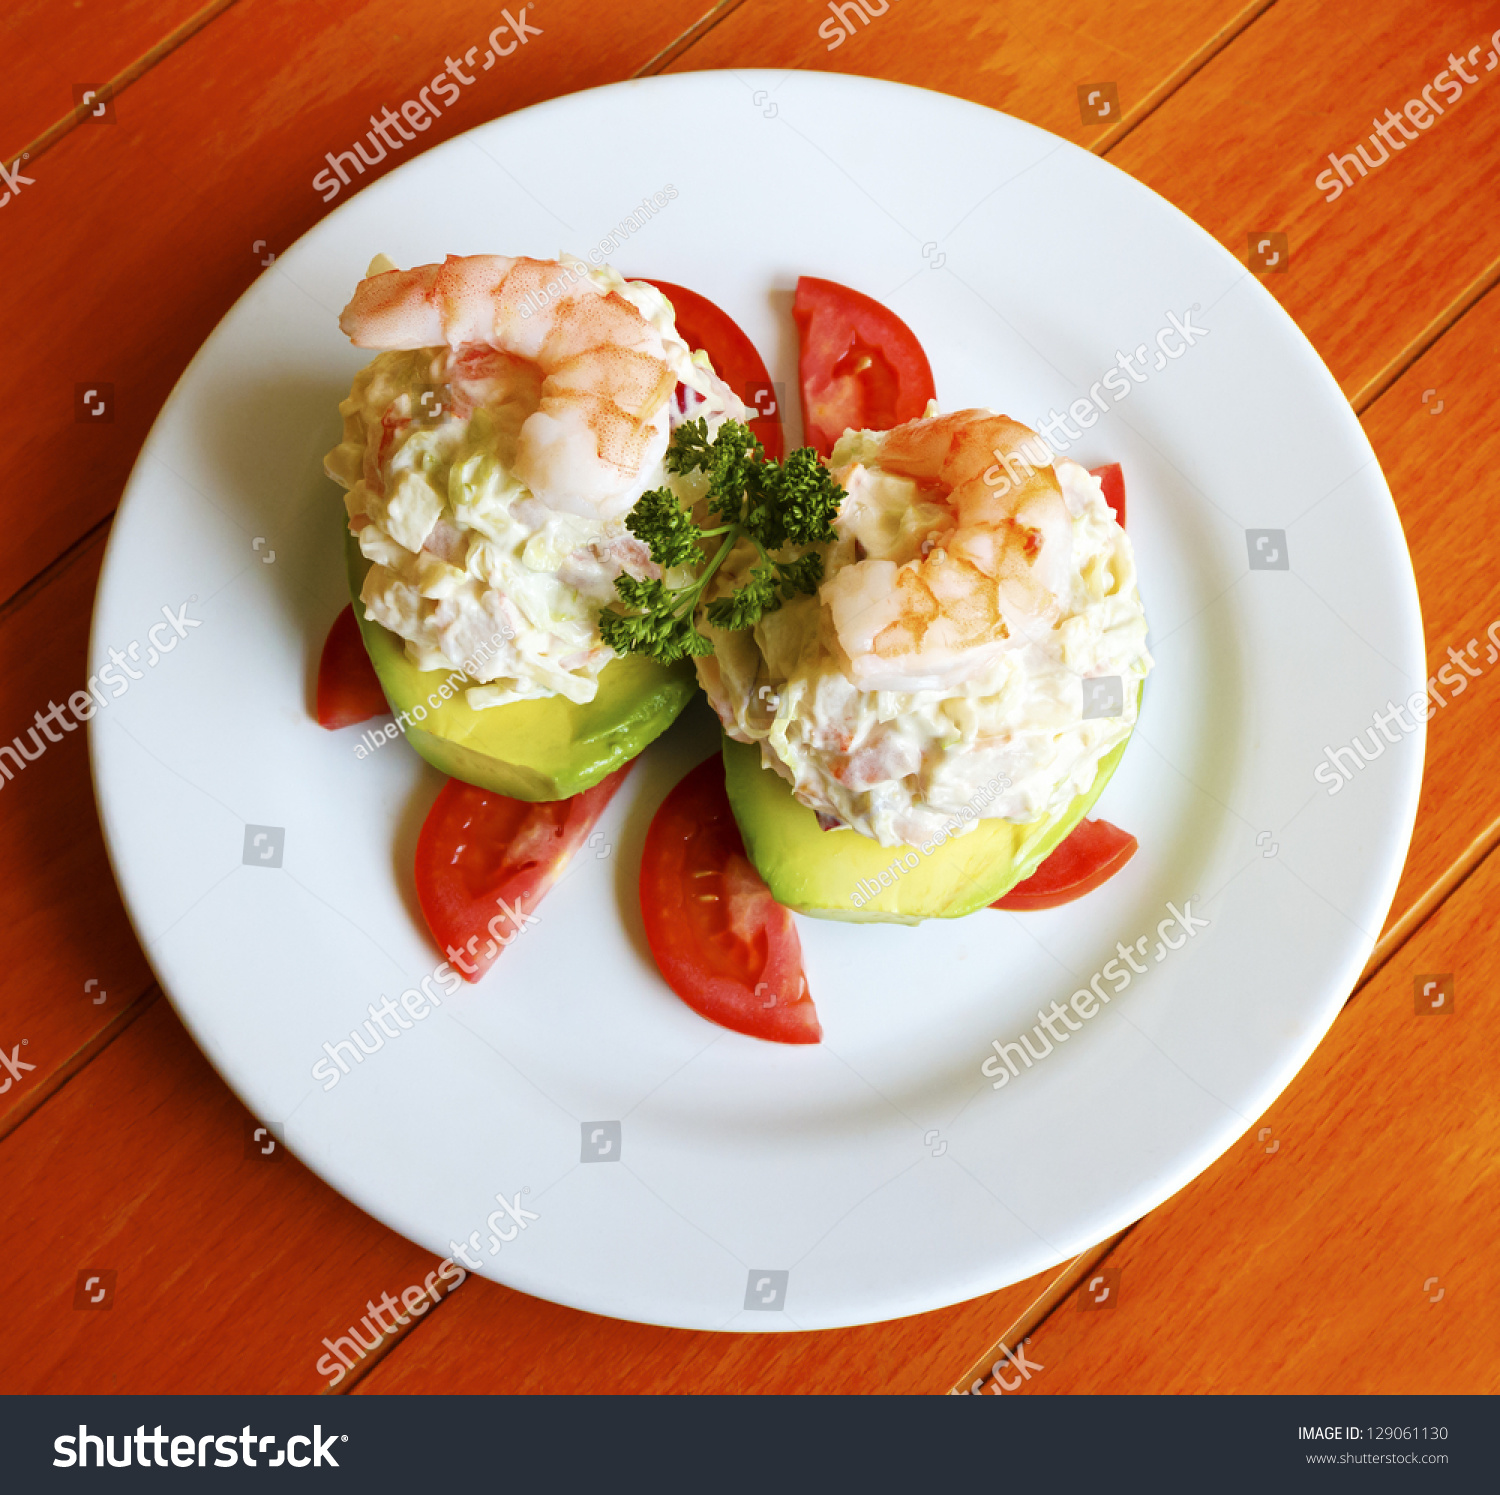 Exquisite Seafood Stuffed Avocado With Shrimp Stock Photo 129061130 ...